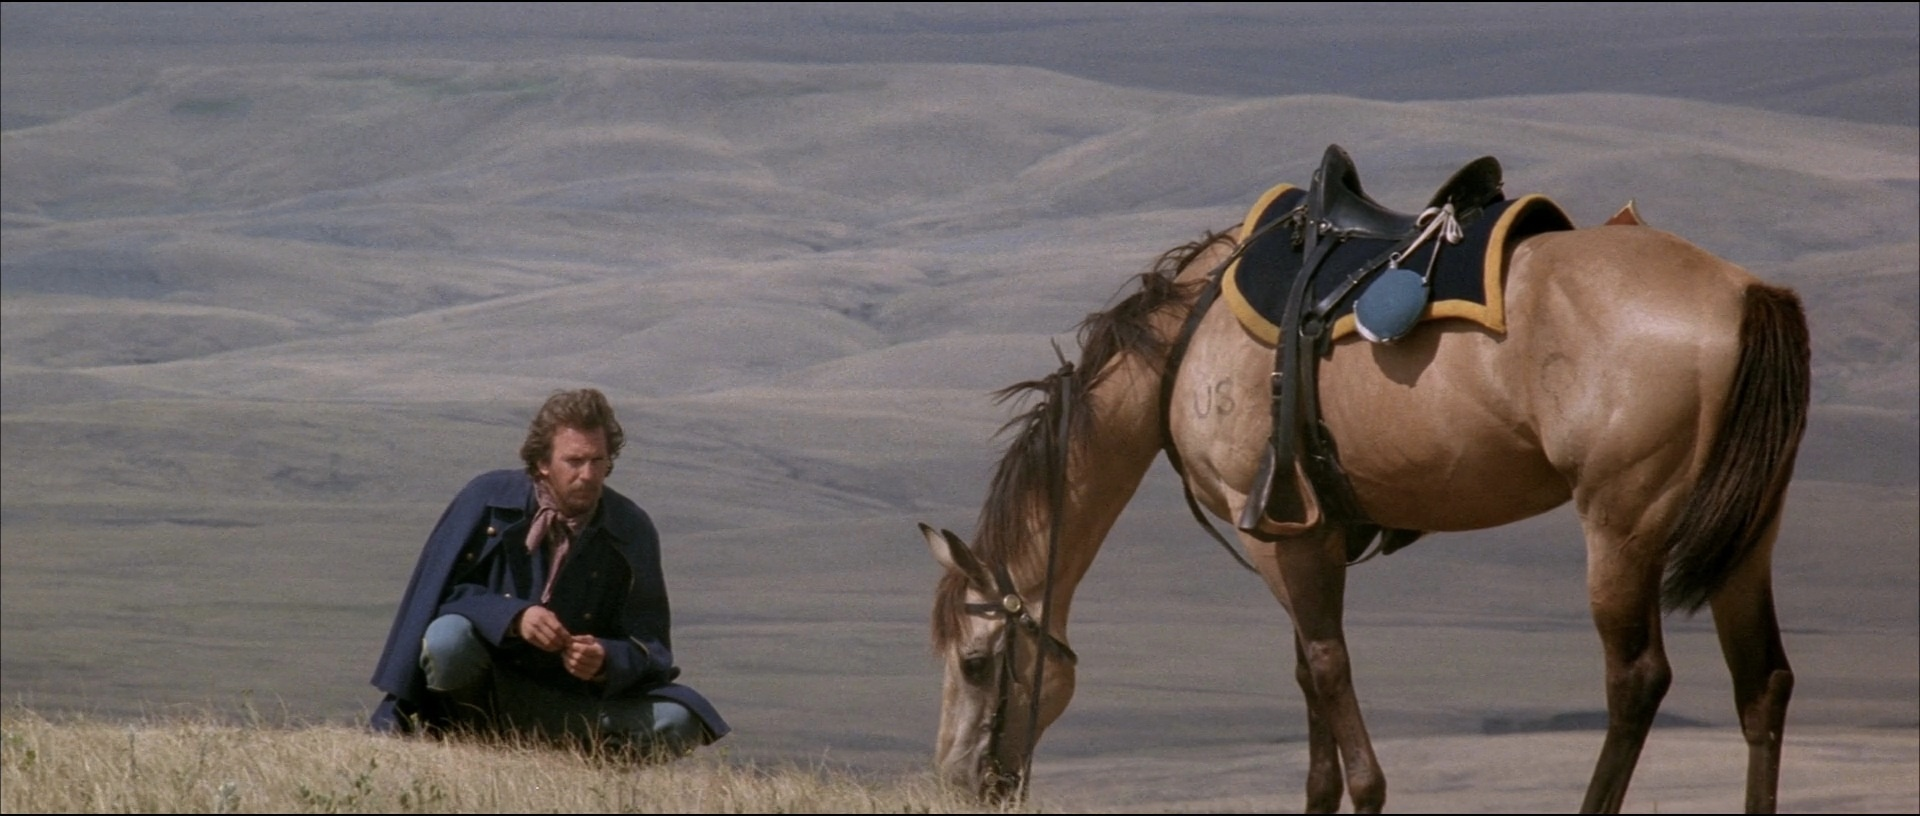 Essay Com In English One Of The Reasons Dances With Wolves Was Such A Big Success  Years Ago  Was Because Of Its Oscarwinning Cinematography By Dean Semler High School Admission Essay Examples also How To Make A Good Thesis Statement For An Essay The Cinematography Of Dances With Wolves Photo Essay  I Cant  Business Essays Samples